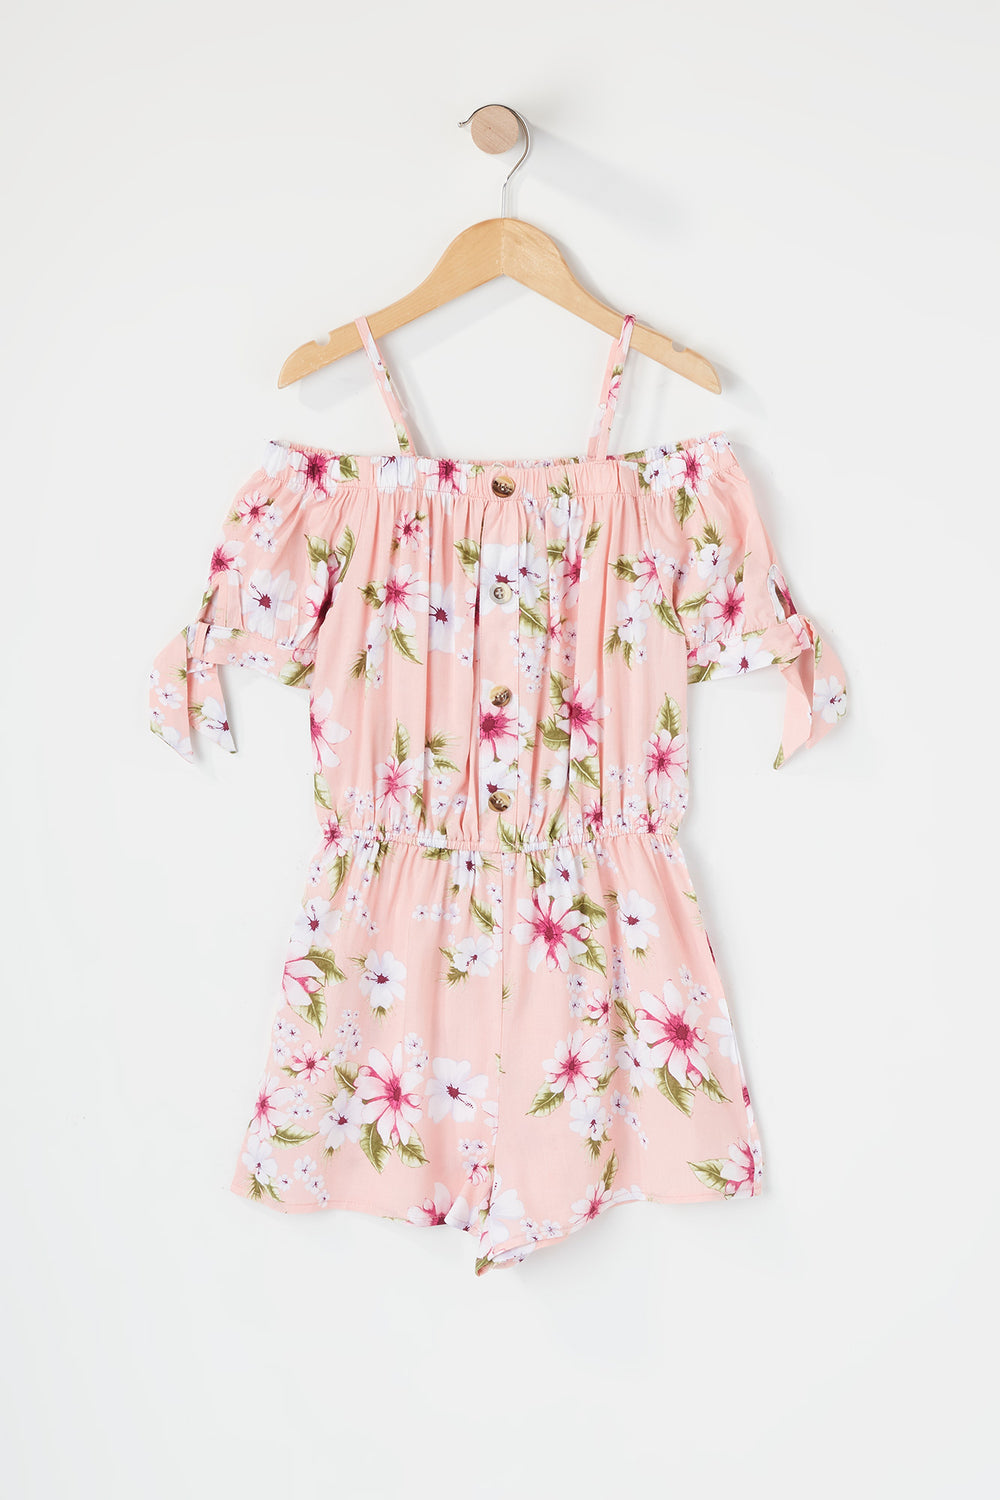 Girls Floral Off The Shoulder Romper Pink